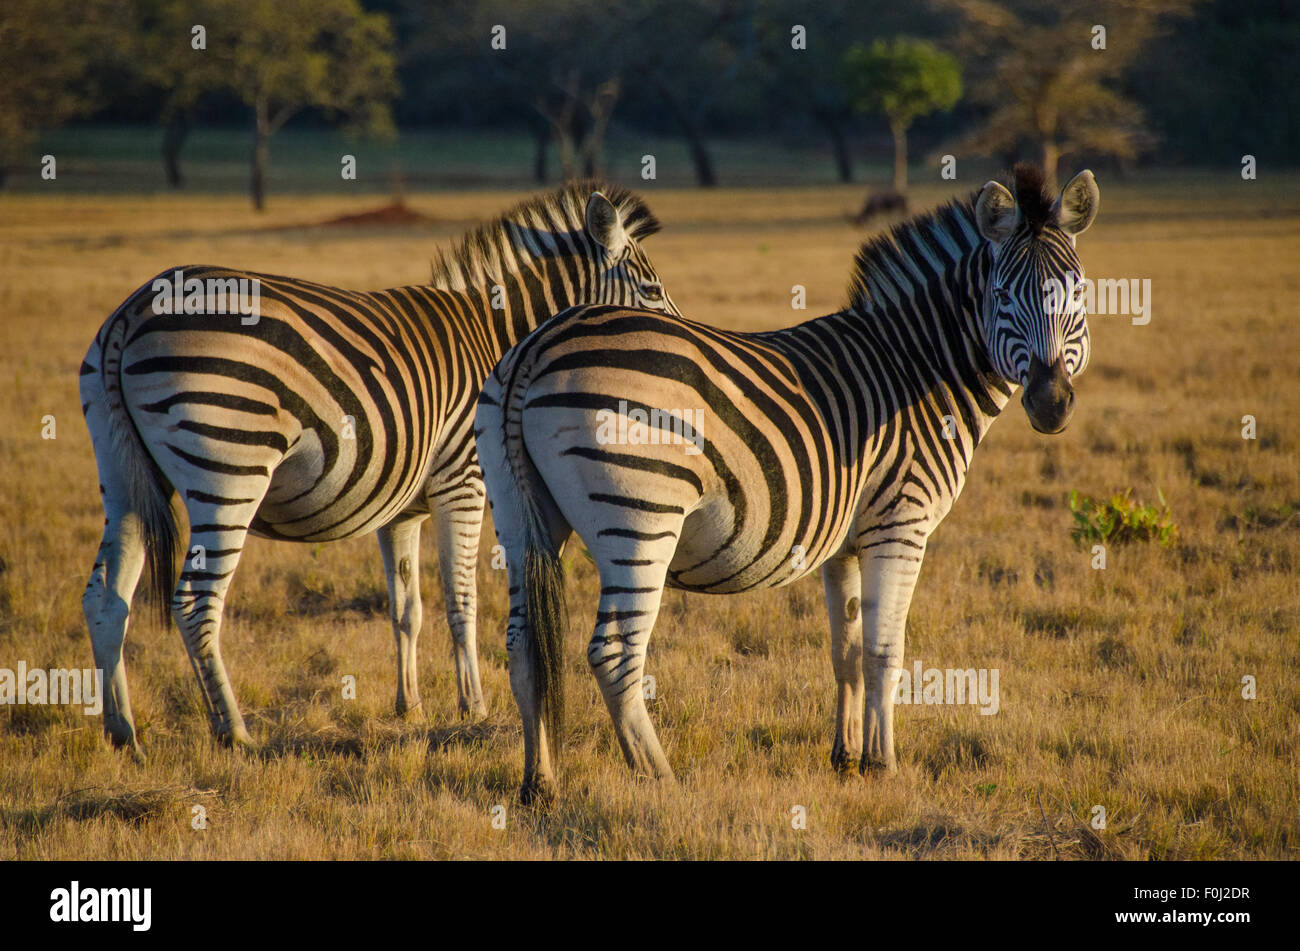 A herd of zebras graze at Mlilwane Wildlife Sanctuary in Swaziland as the sun begins to rise. - Stock Image